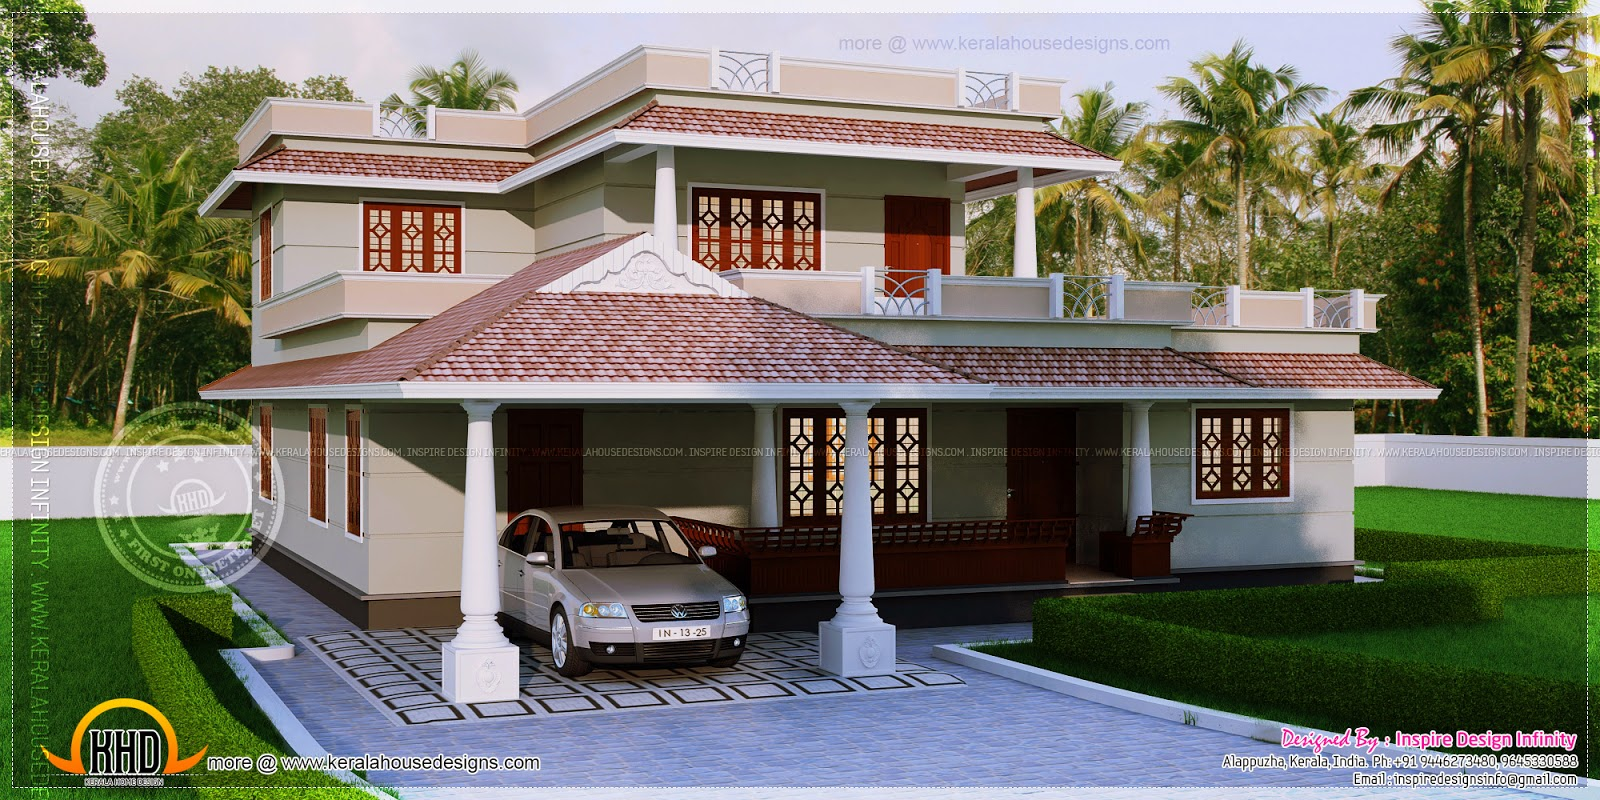 4 bedroom kerala style house in 300 square yards kerala for Kerala style 2 bedroom house plans